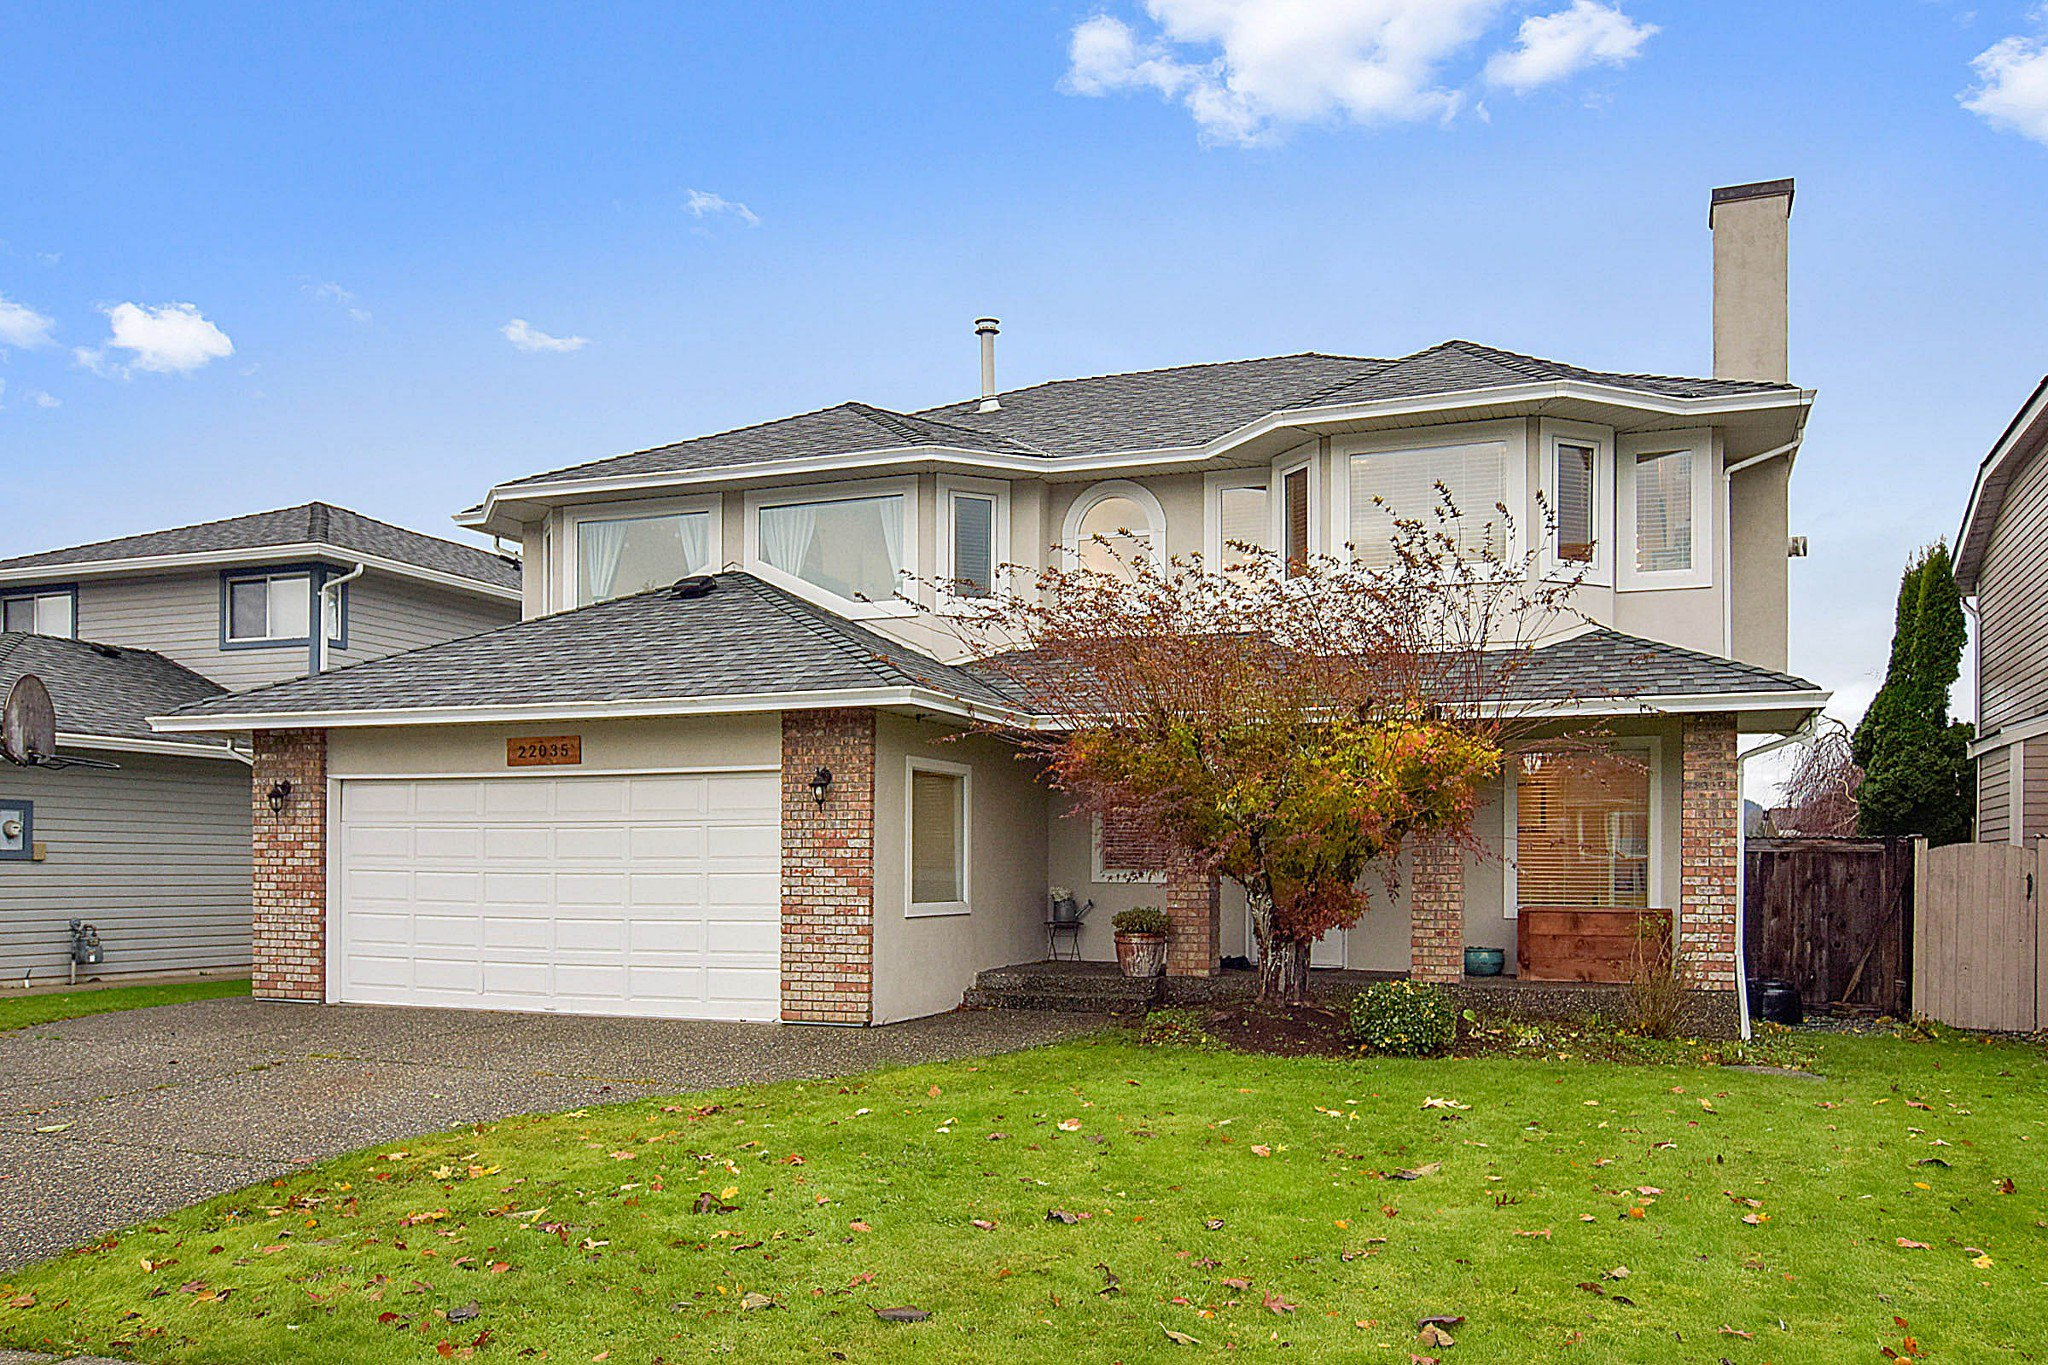 Main Photo: 22035 126 Avenue in Maple Ridge: West Central House for sale : MLS®# R2518759